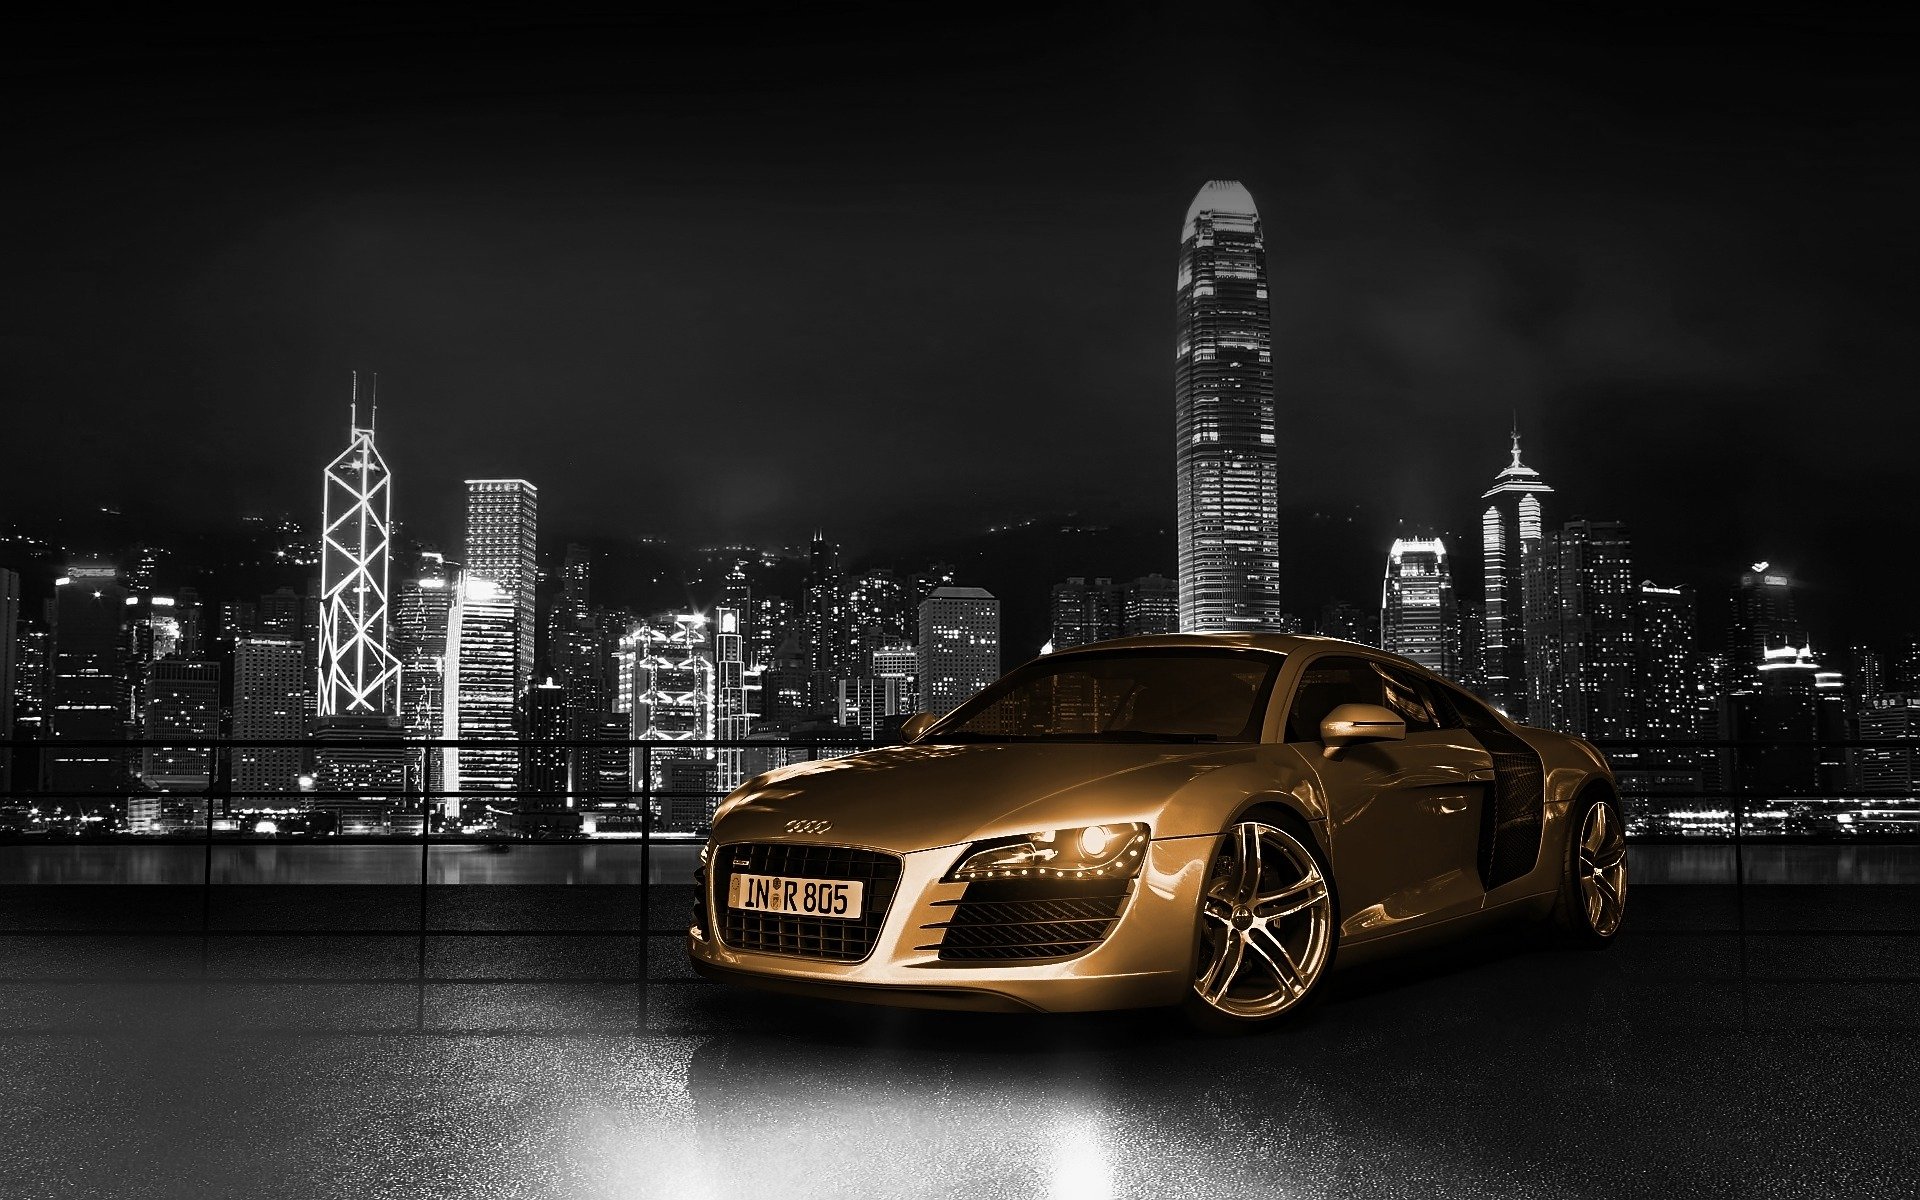 Audi R8 Gold Wallpaper Audi Cars Wallpapers In Jpg Format For Free